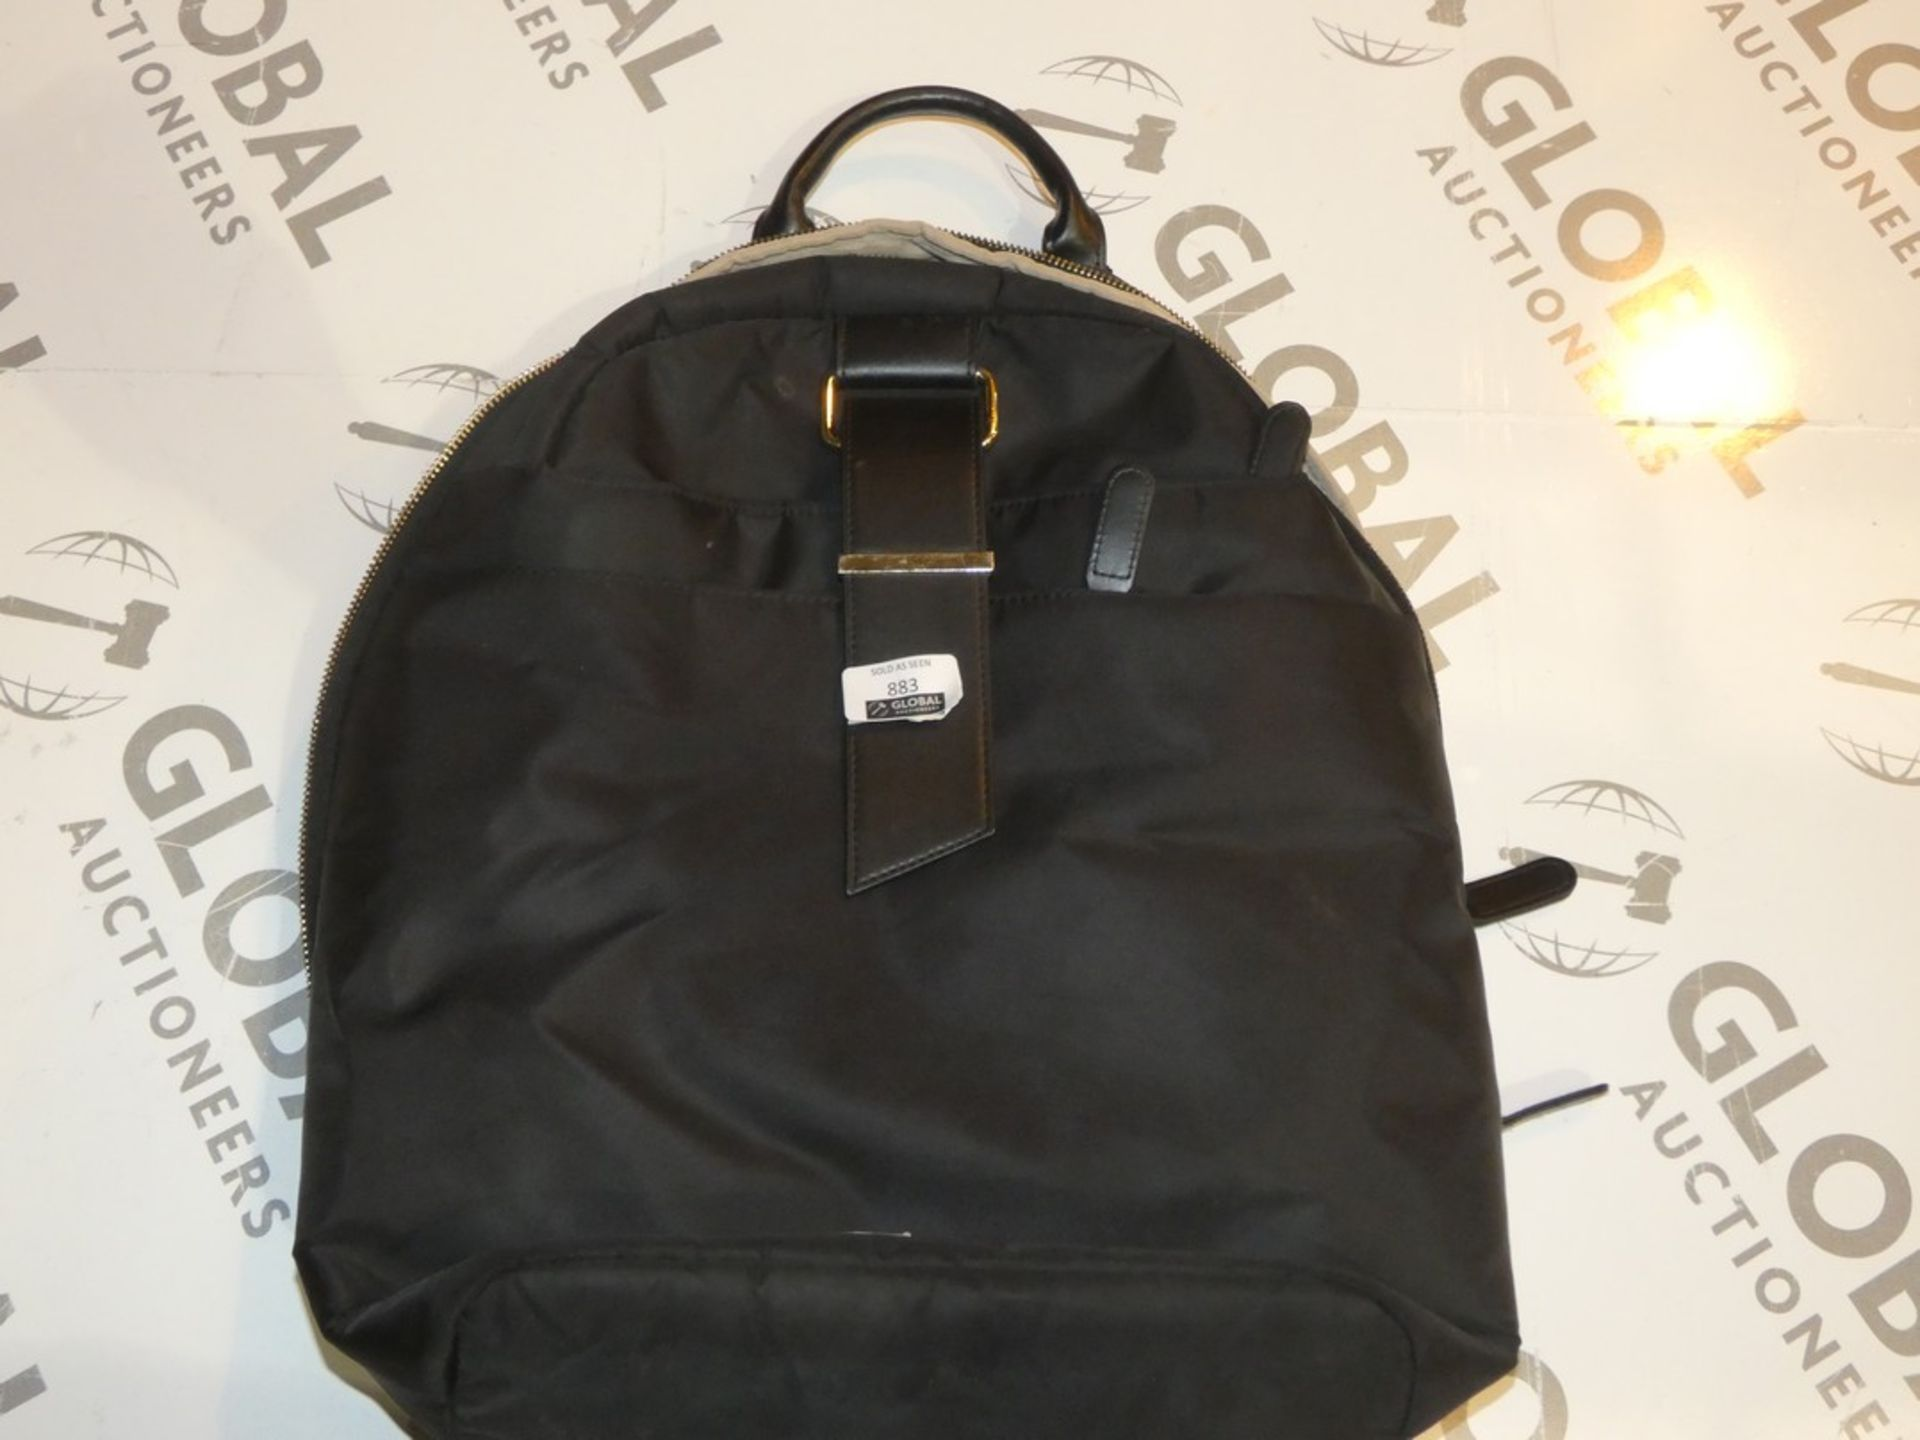 Lot 883 - Boxed Wenga Backpack Style Laptop Bags